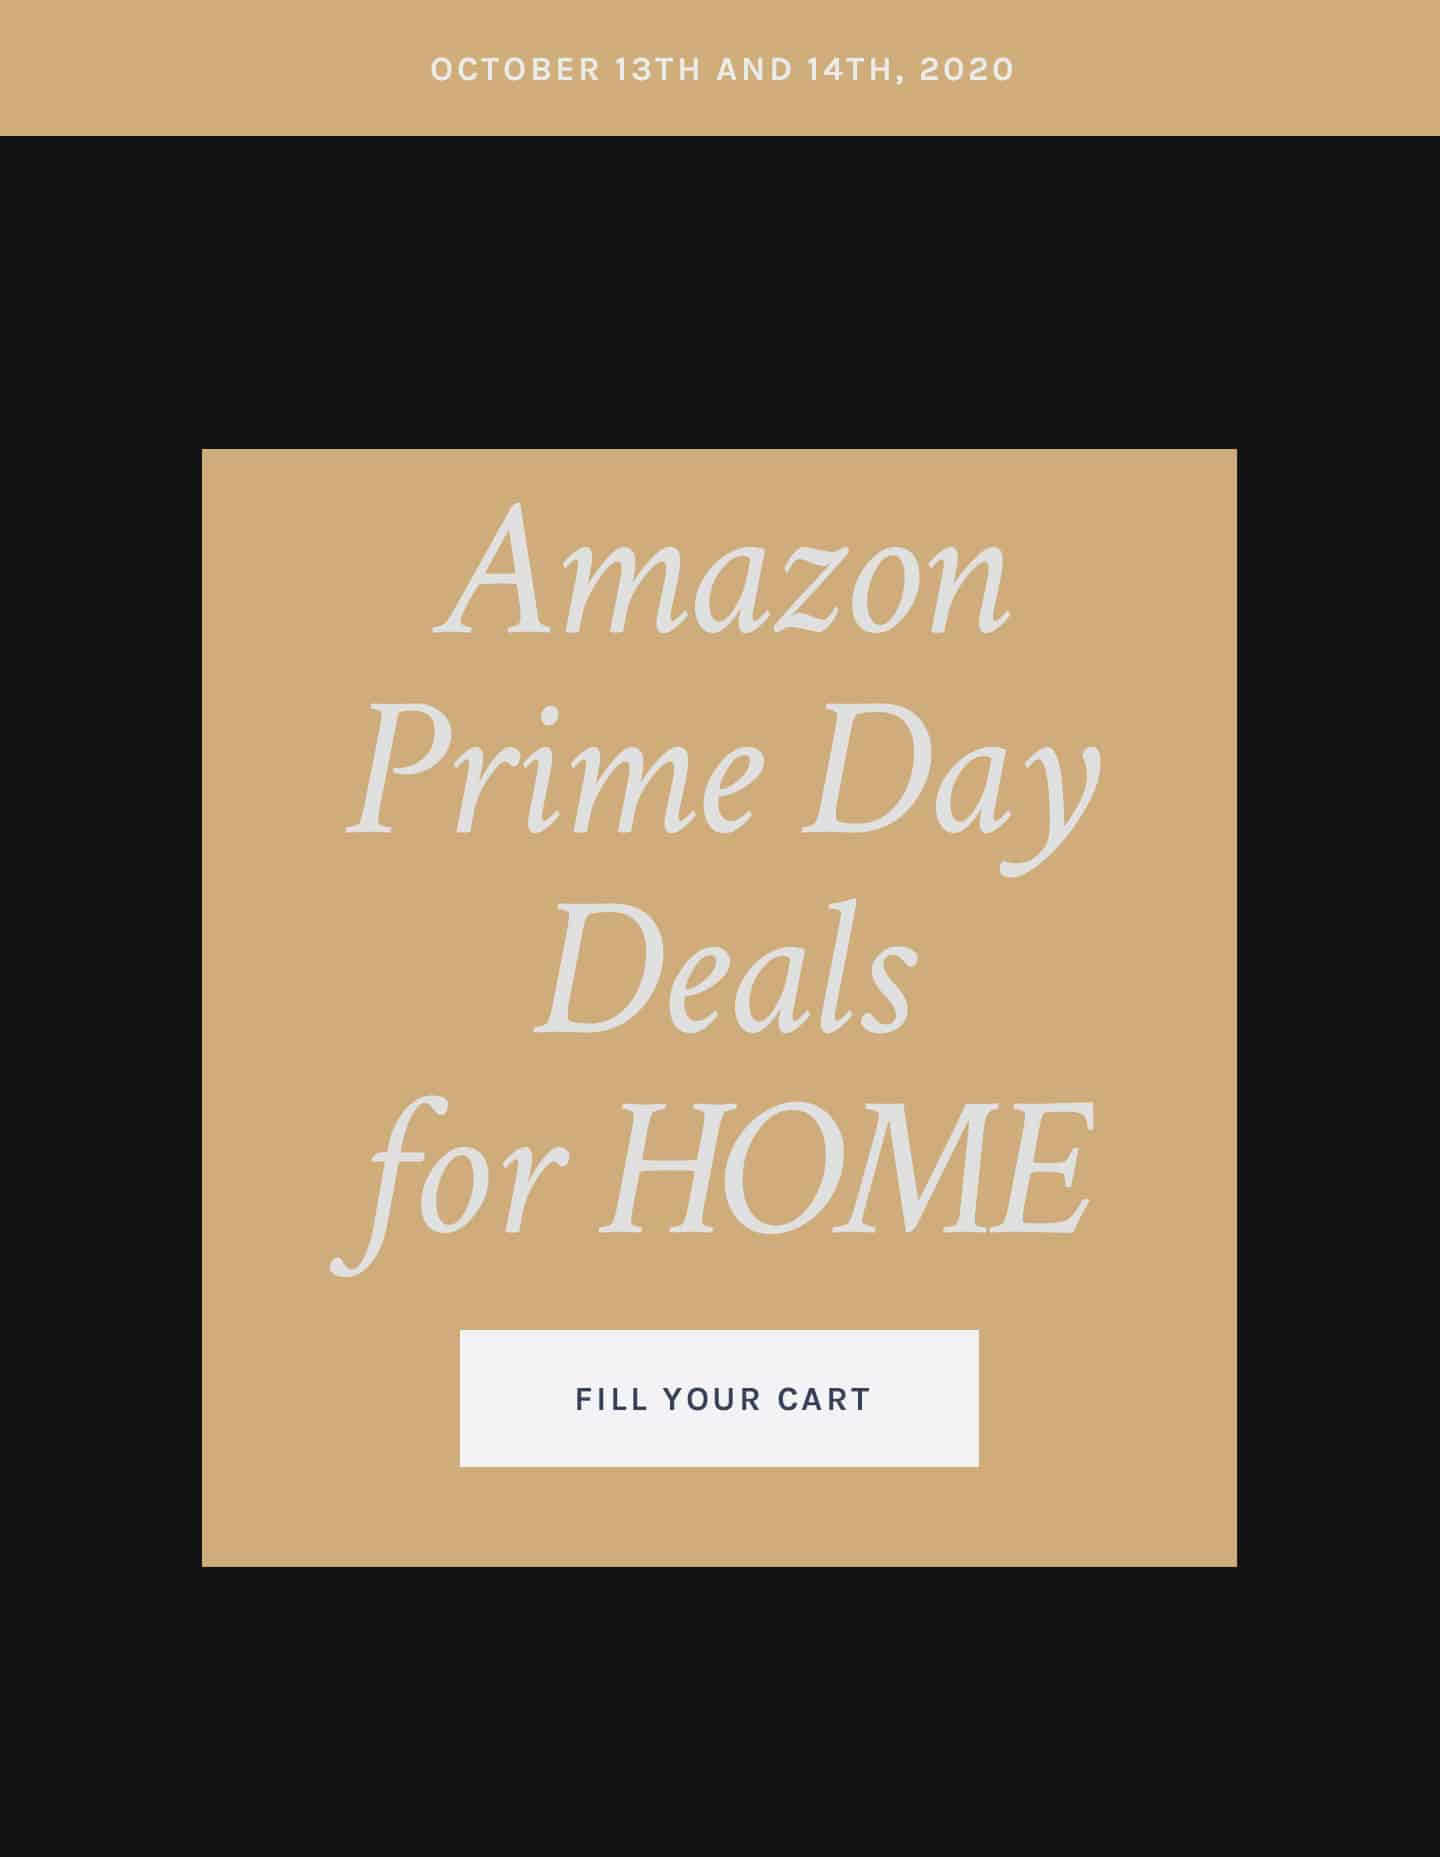 Amazon Prime Day Deals for Home